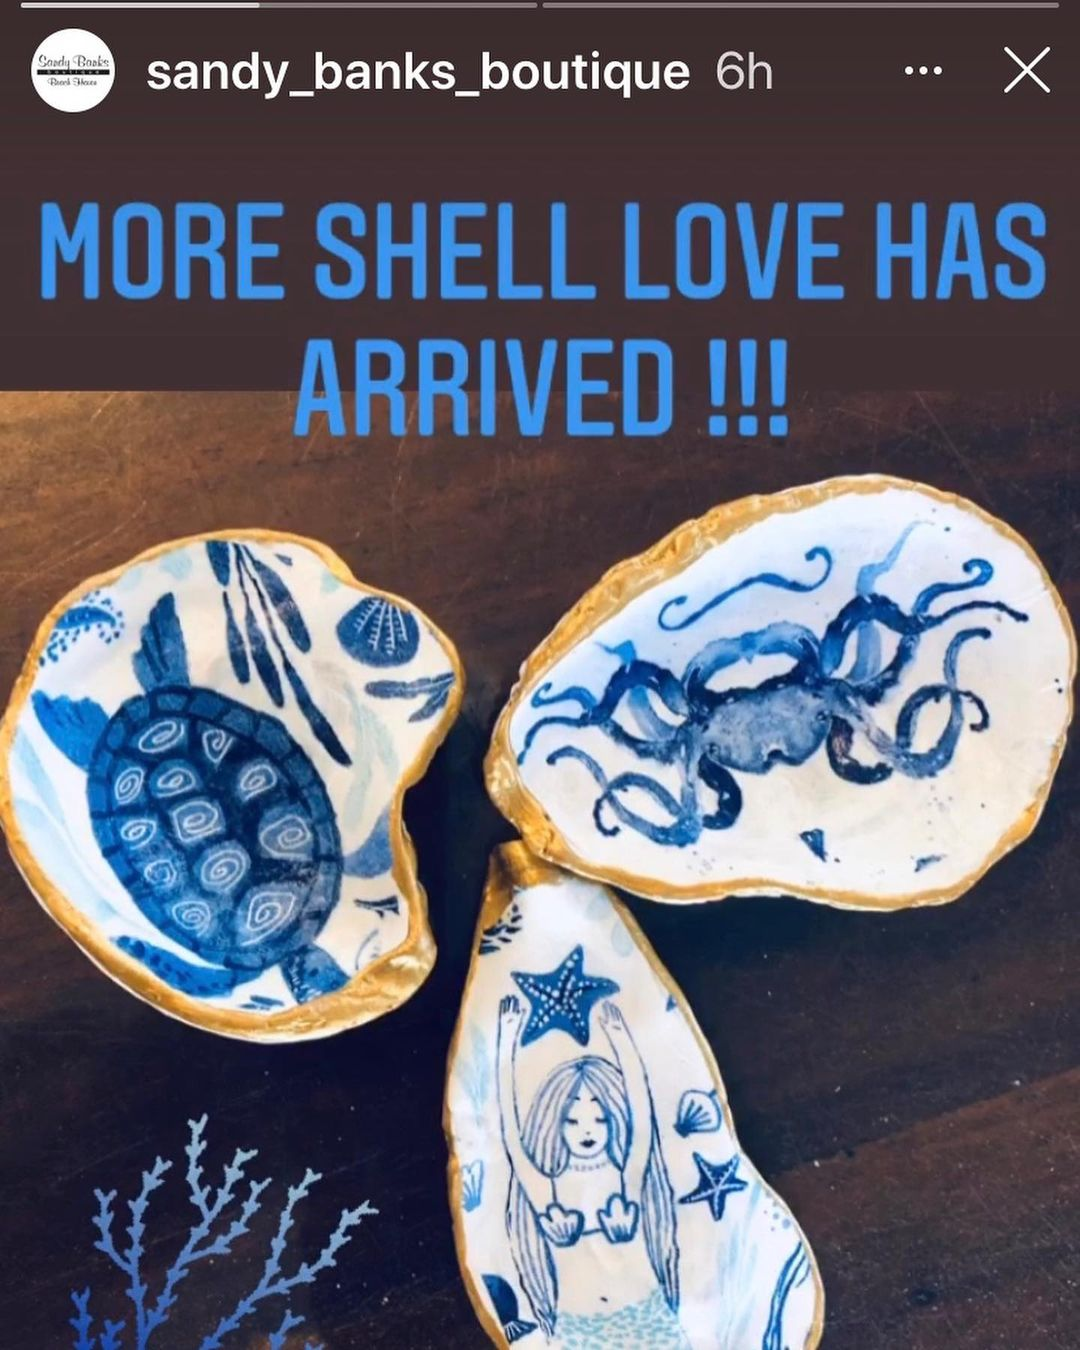 LBI Sandy Banks has restocked my shells! Great gift idea!         …